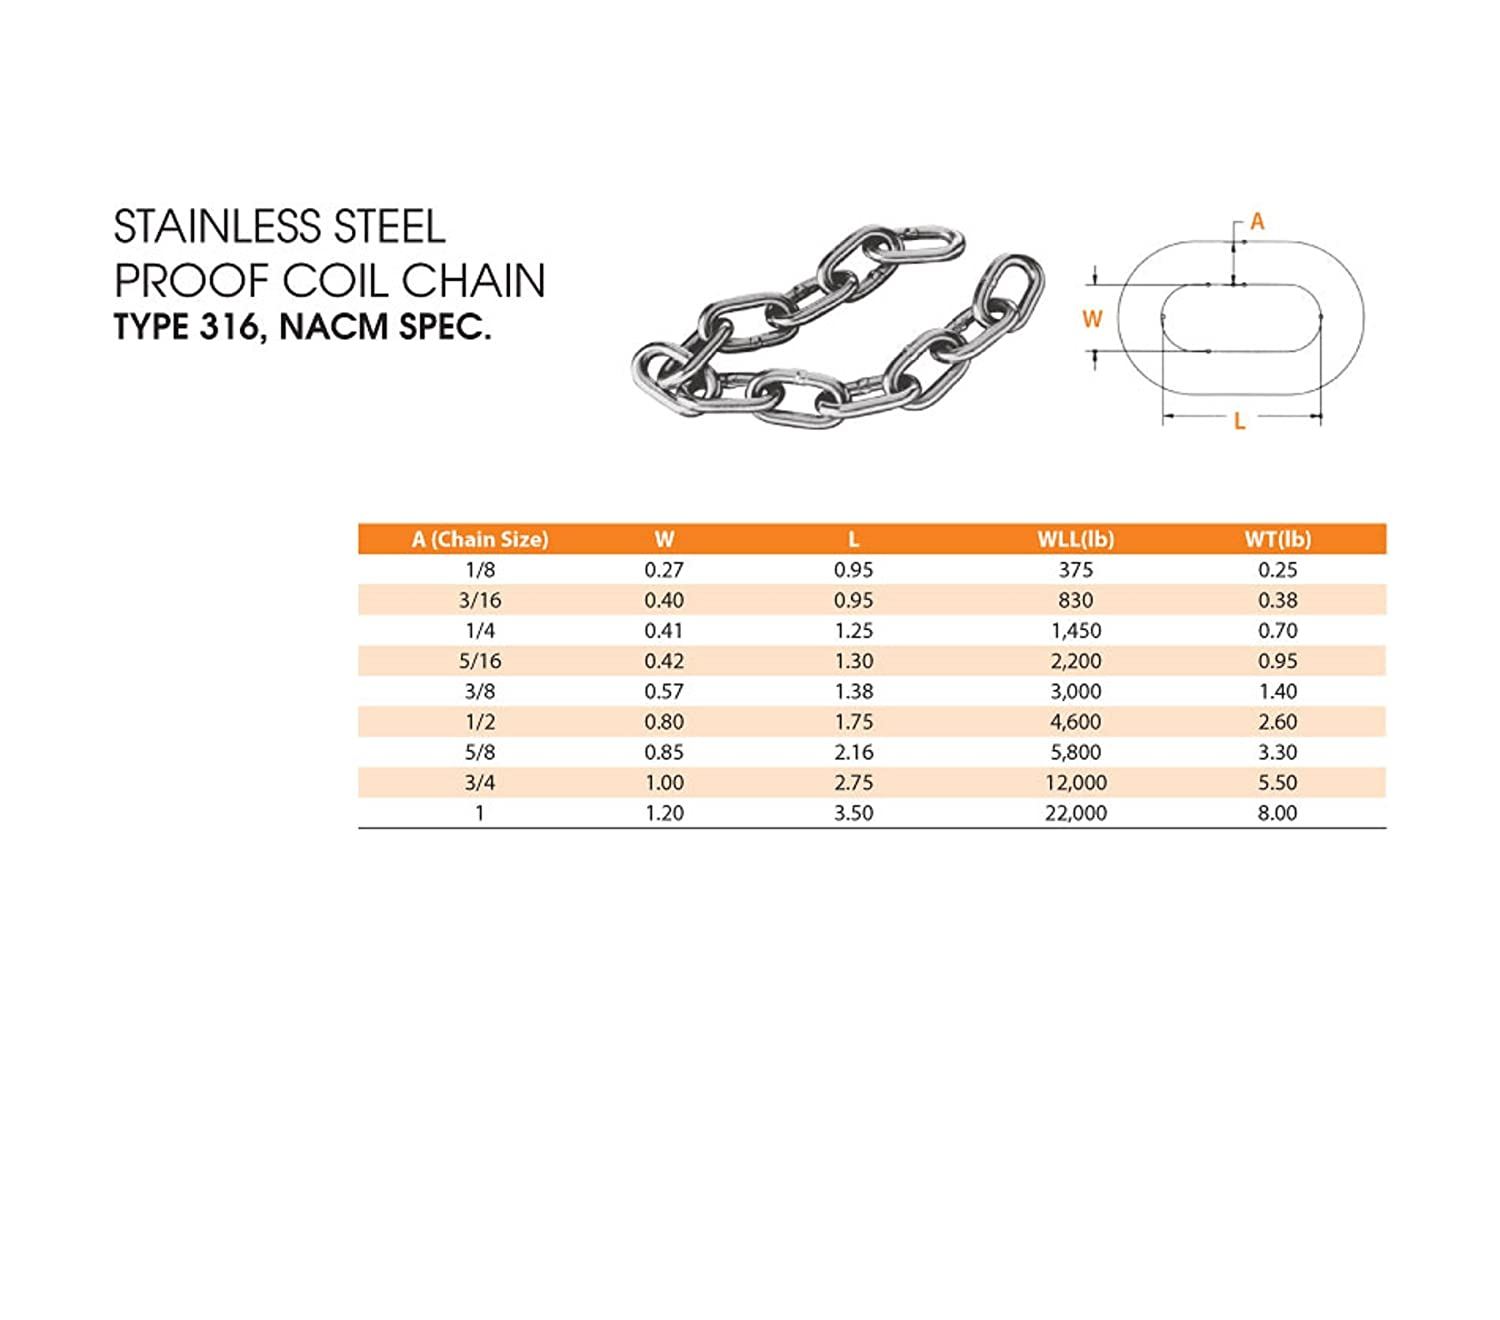 Arkhardware 3 16 Proof Coil Hardware Link Chain Stainless Steel 316 Audi 1 8 Engine Diagram Commercial Marine Grade 20 Feet